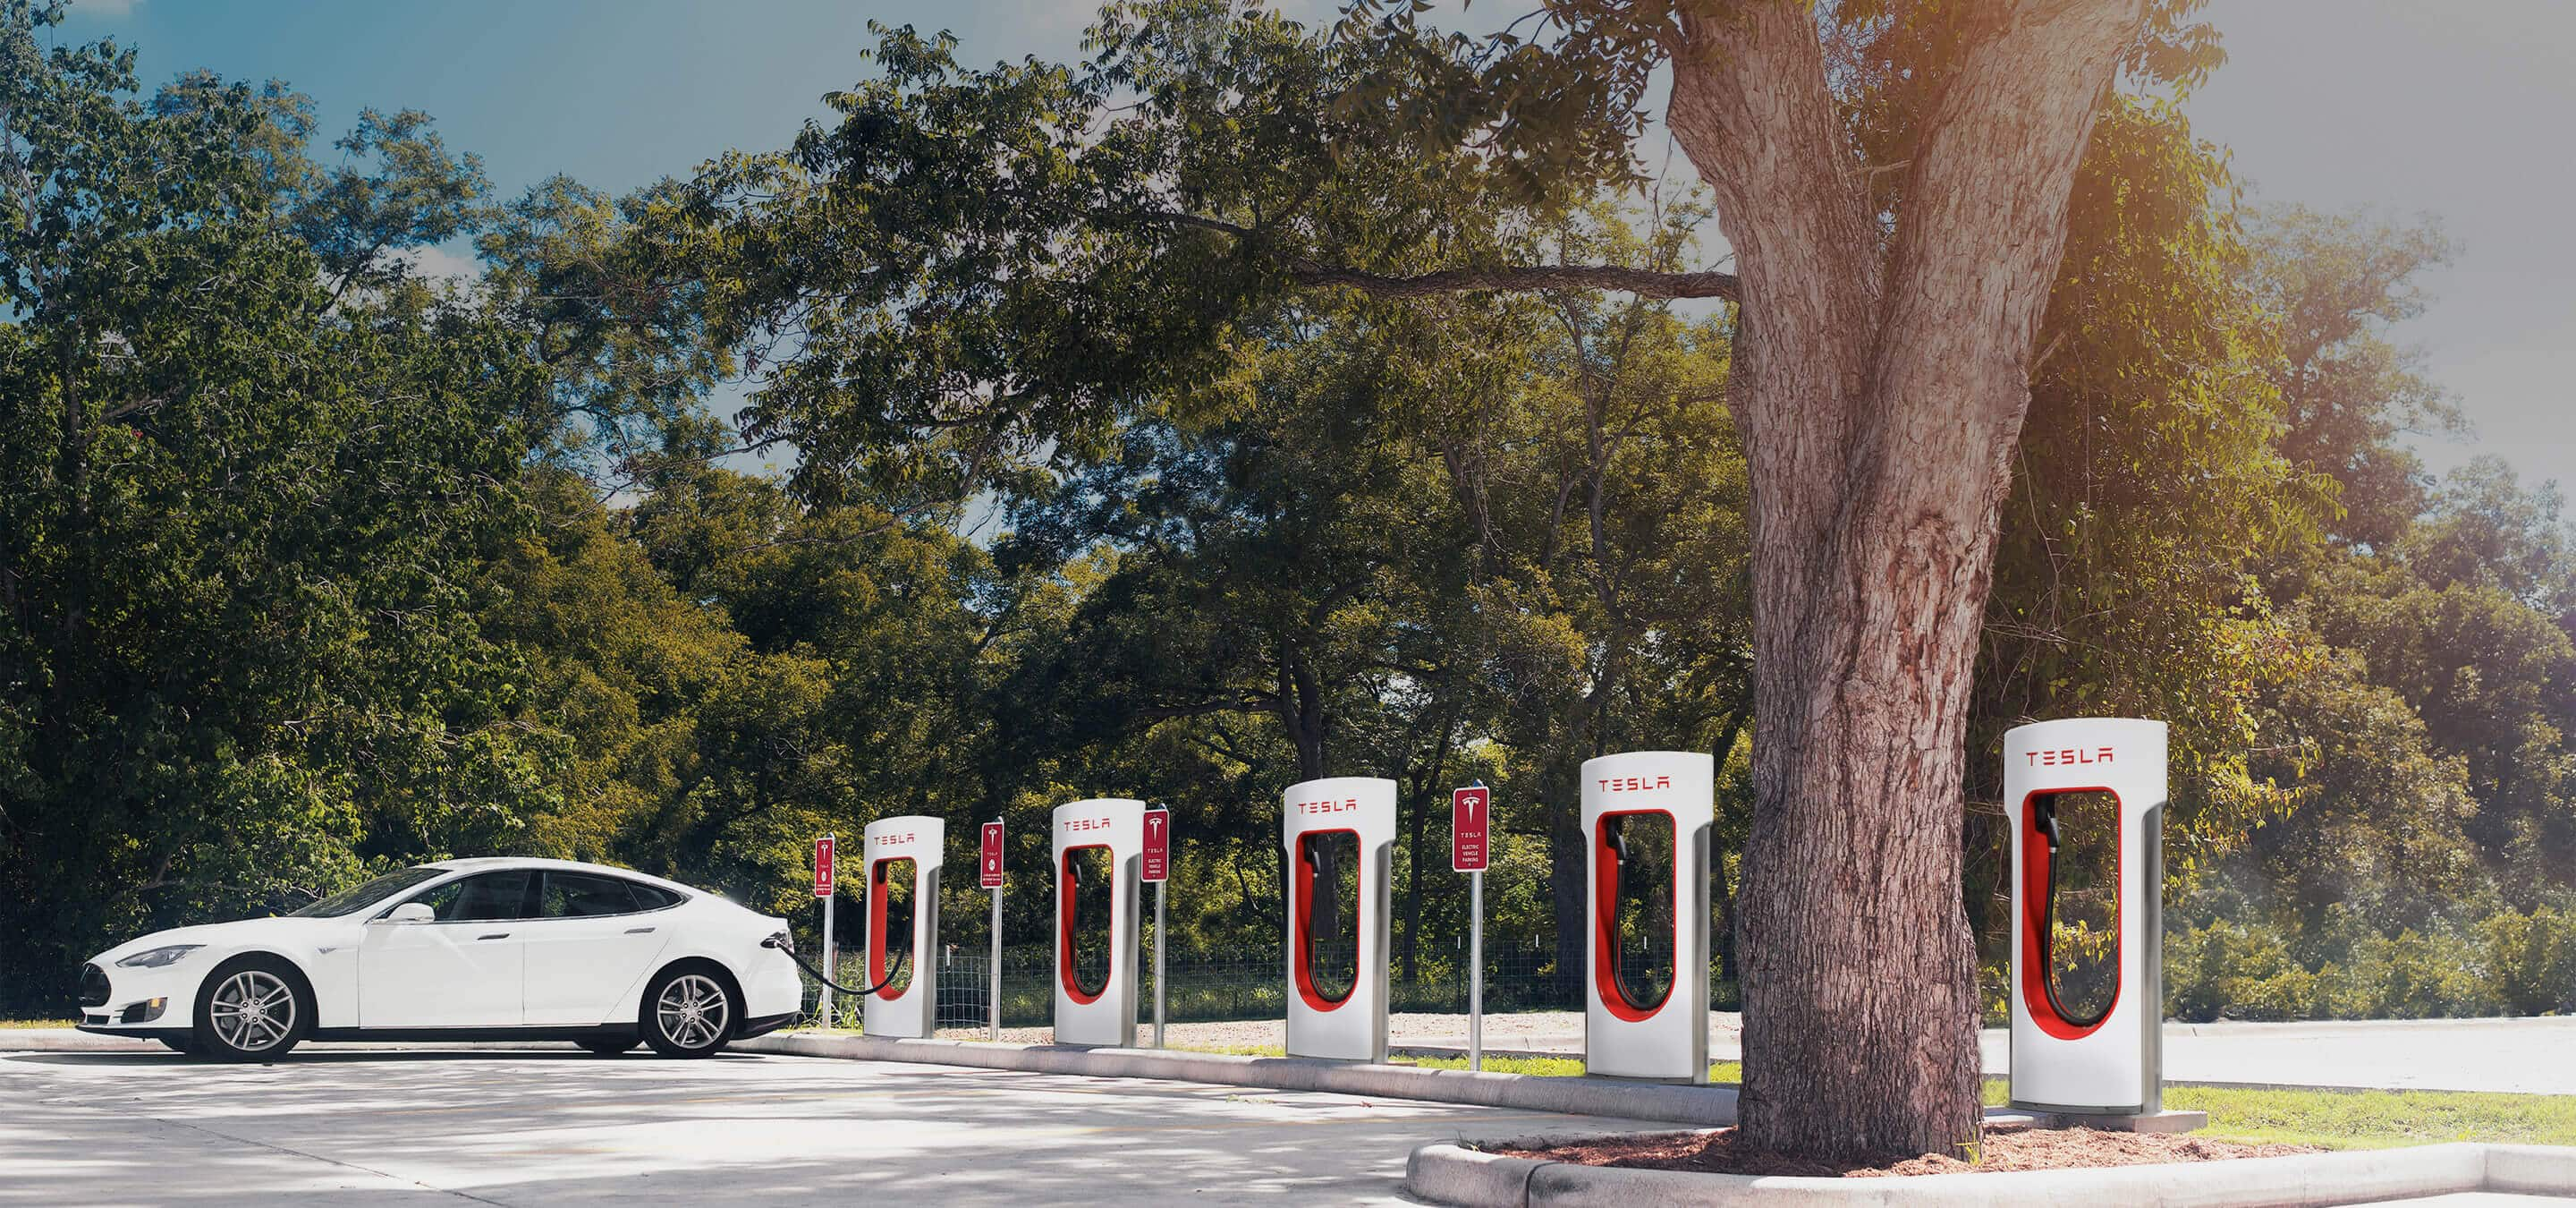 Showthread additionally Tesla Charging Station Locations New Mexico together with Tesla Locations East Coast together with Tesla Charging Station Locations In Houston further 74440 Kitting Out Bbi Sasr Barney Halo Figures. on tesla charging station locations south dakota